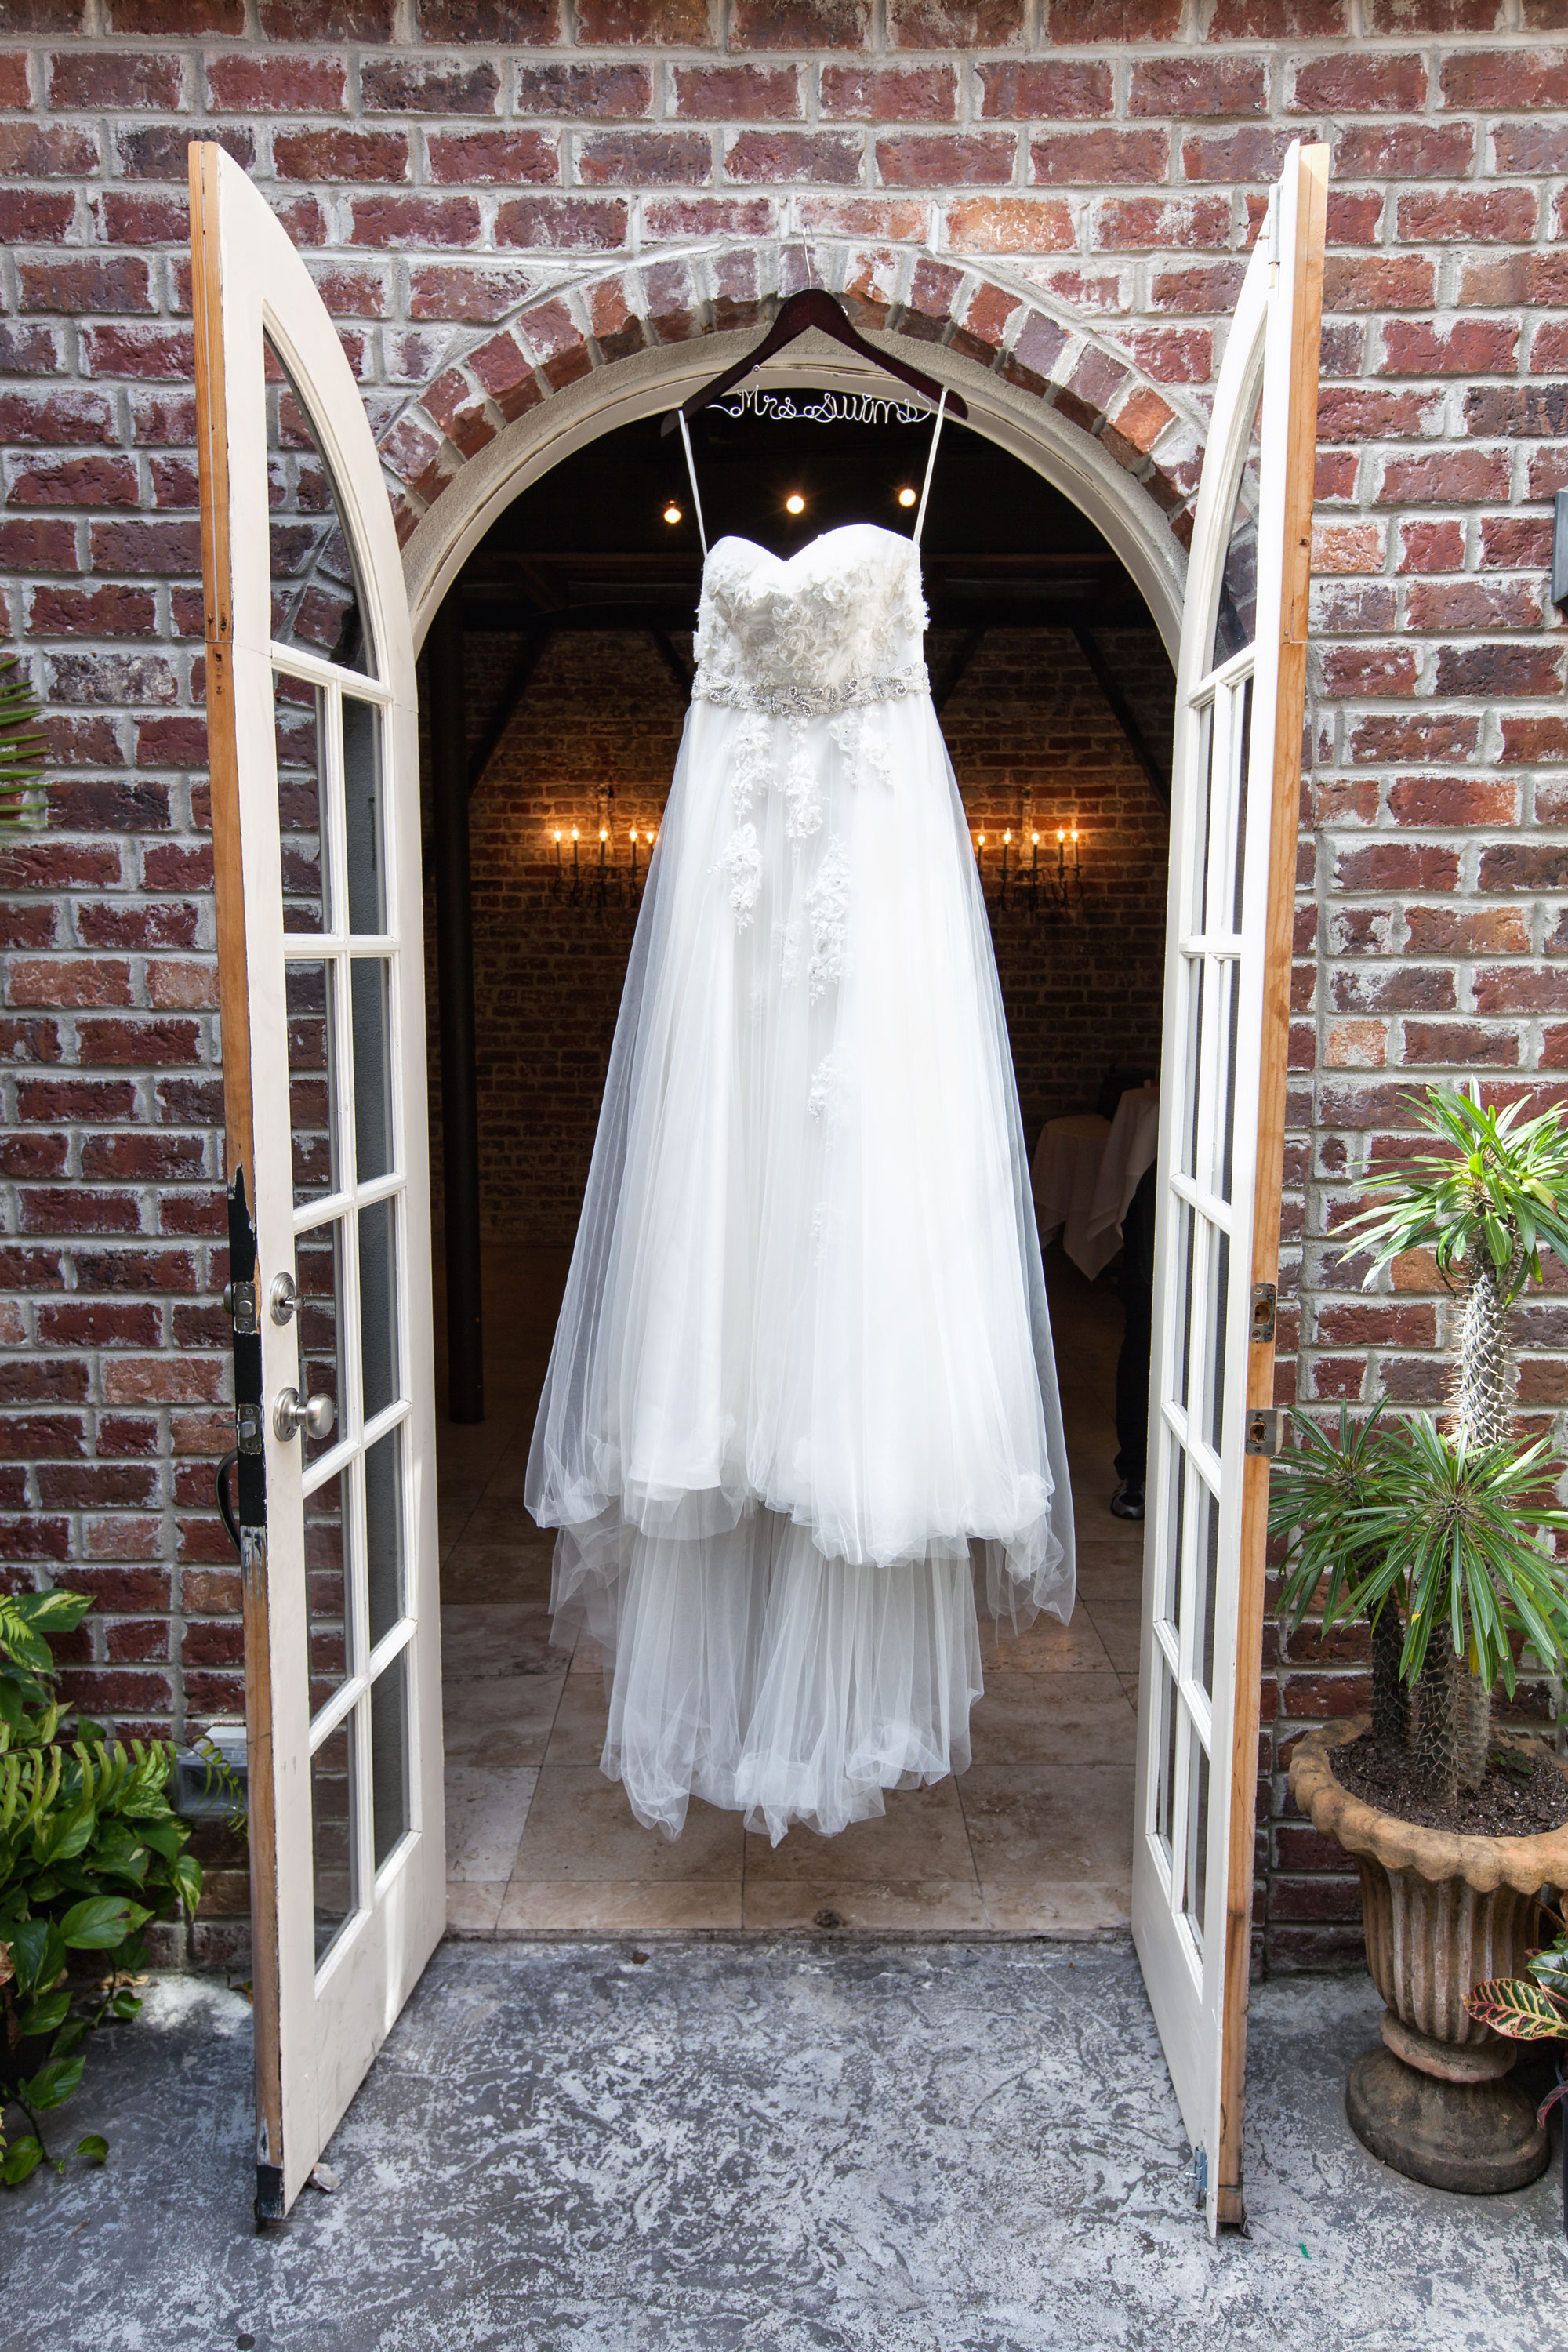 20150221-Swims-NOLA-Wedding-0029-1.jpg